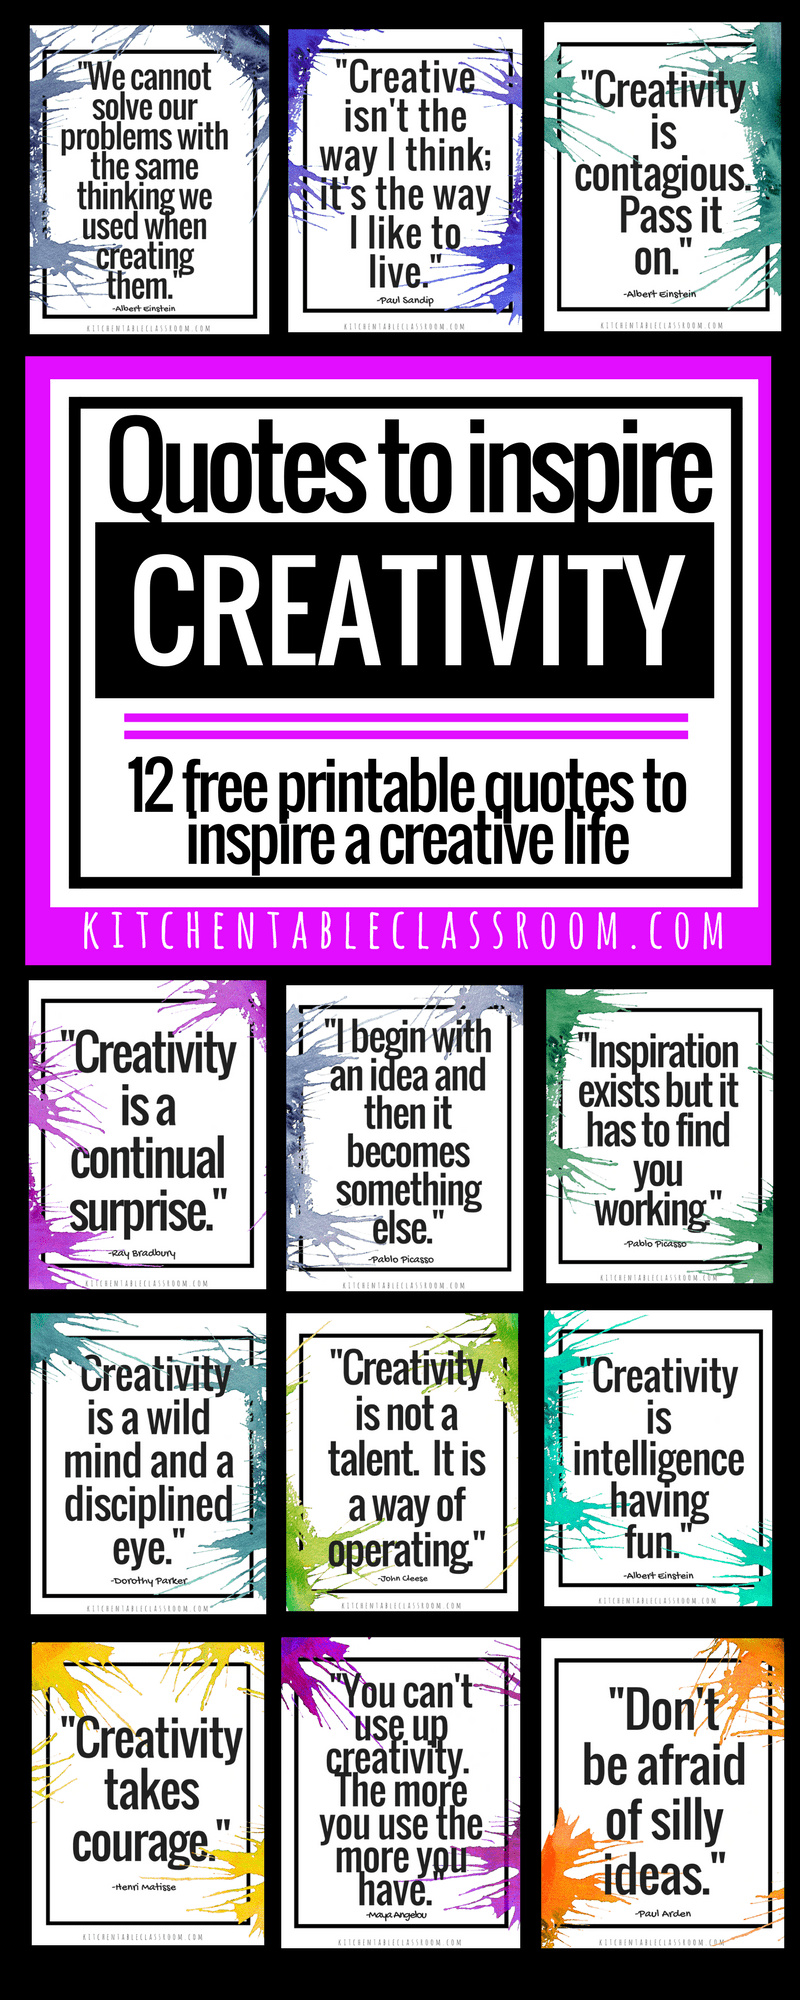 Creativity Quotes Learning To Think Outside The Box The Kitchen Table Classroom Creativity Quotes Inspirational Quotes Quotes